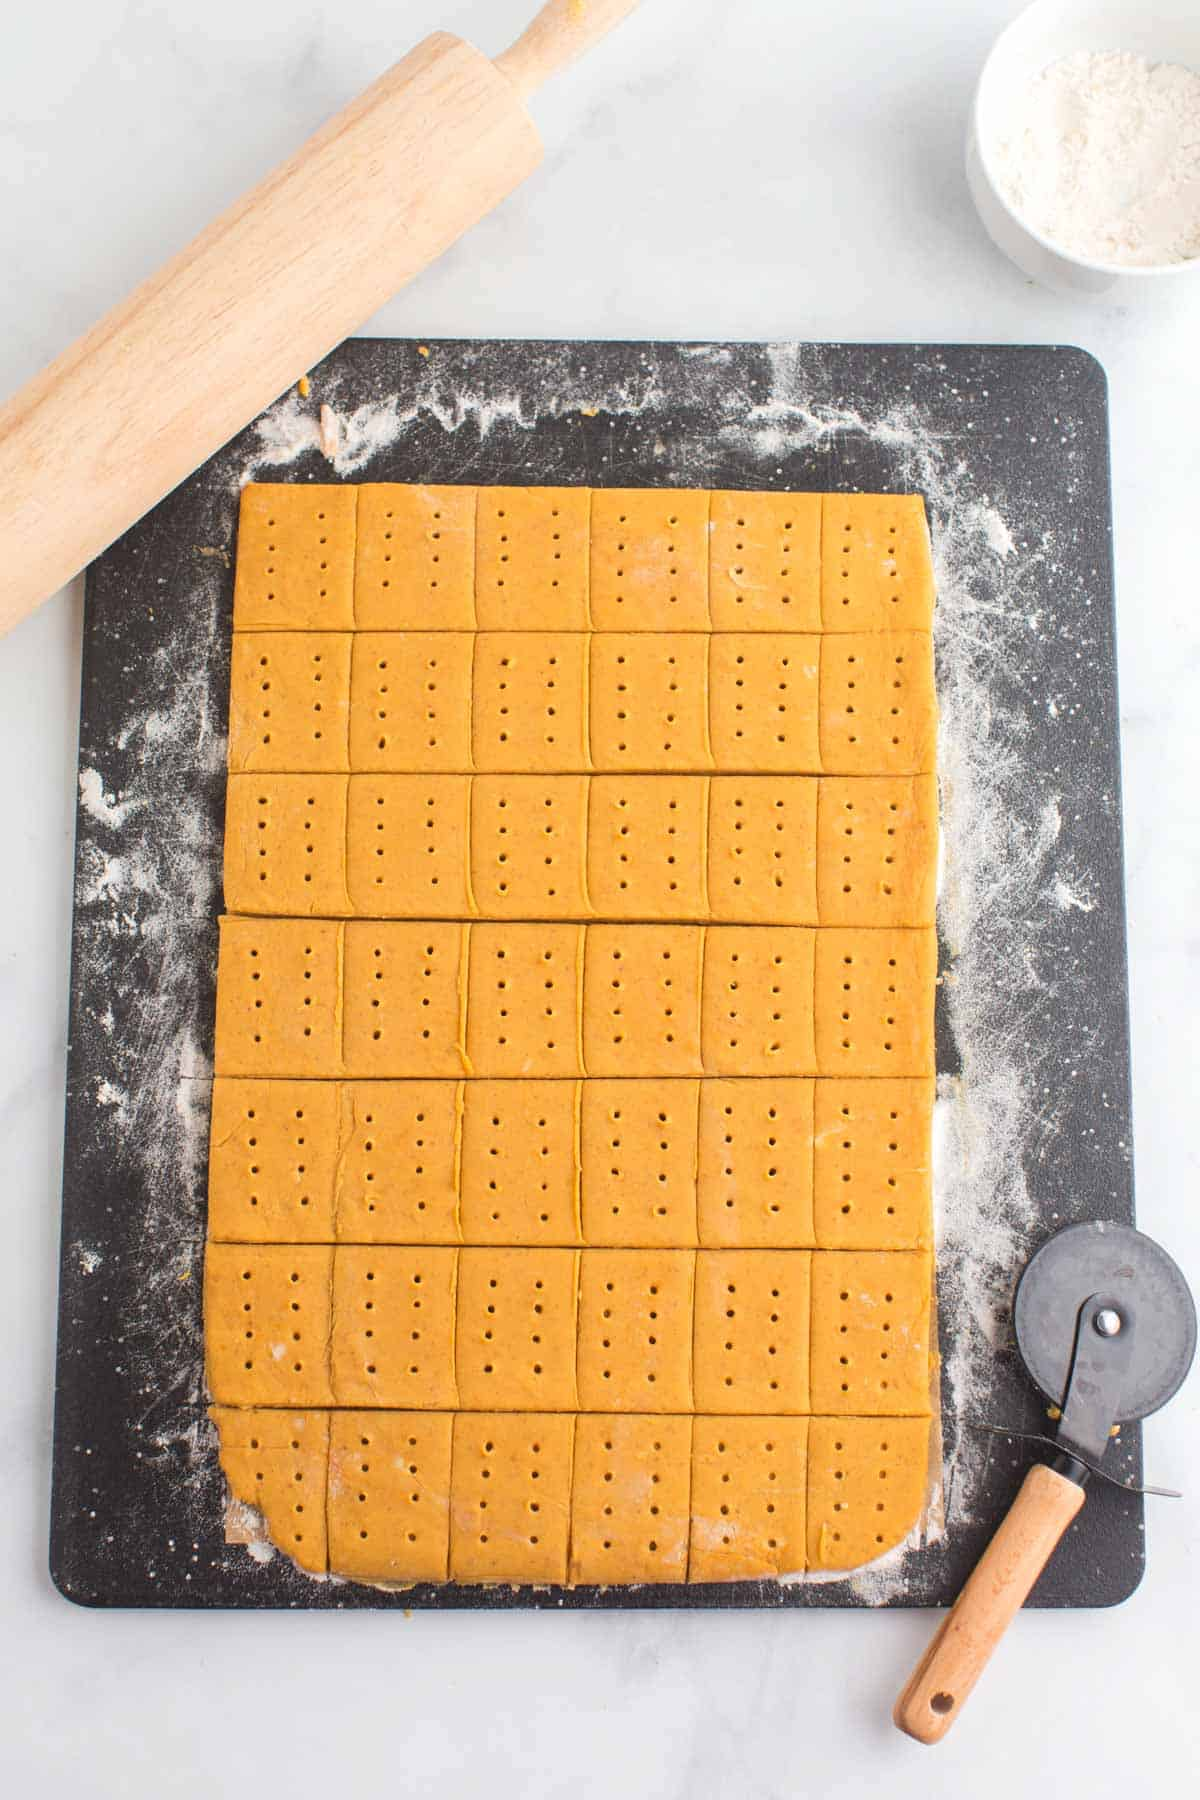 pumpkin cookie dough that has been rolled out and cut into rectangles with small holes poked in each one